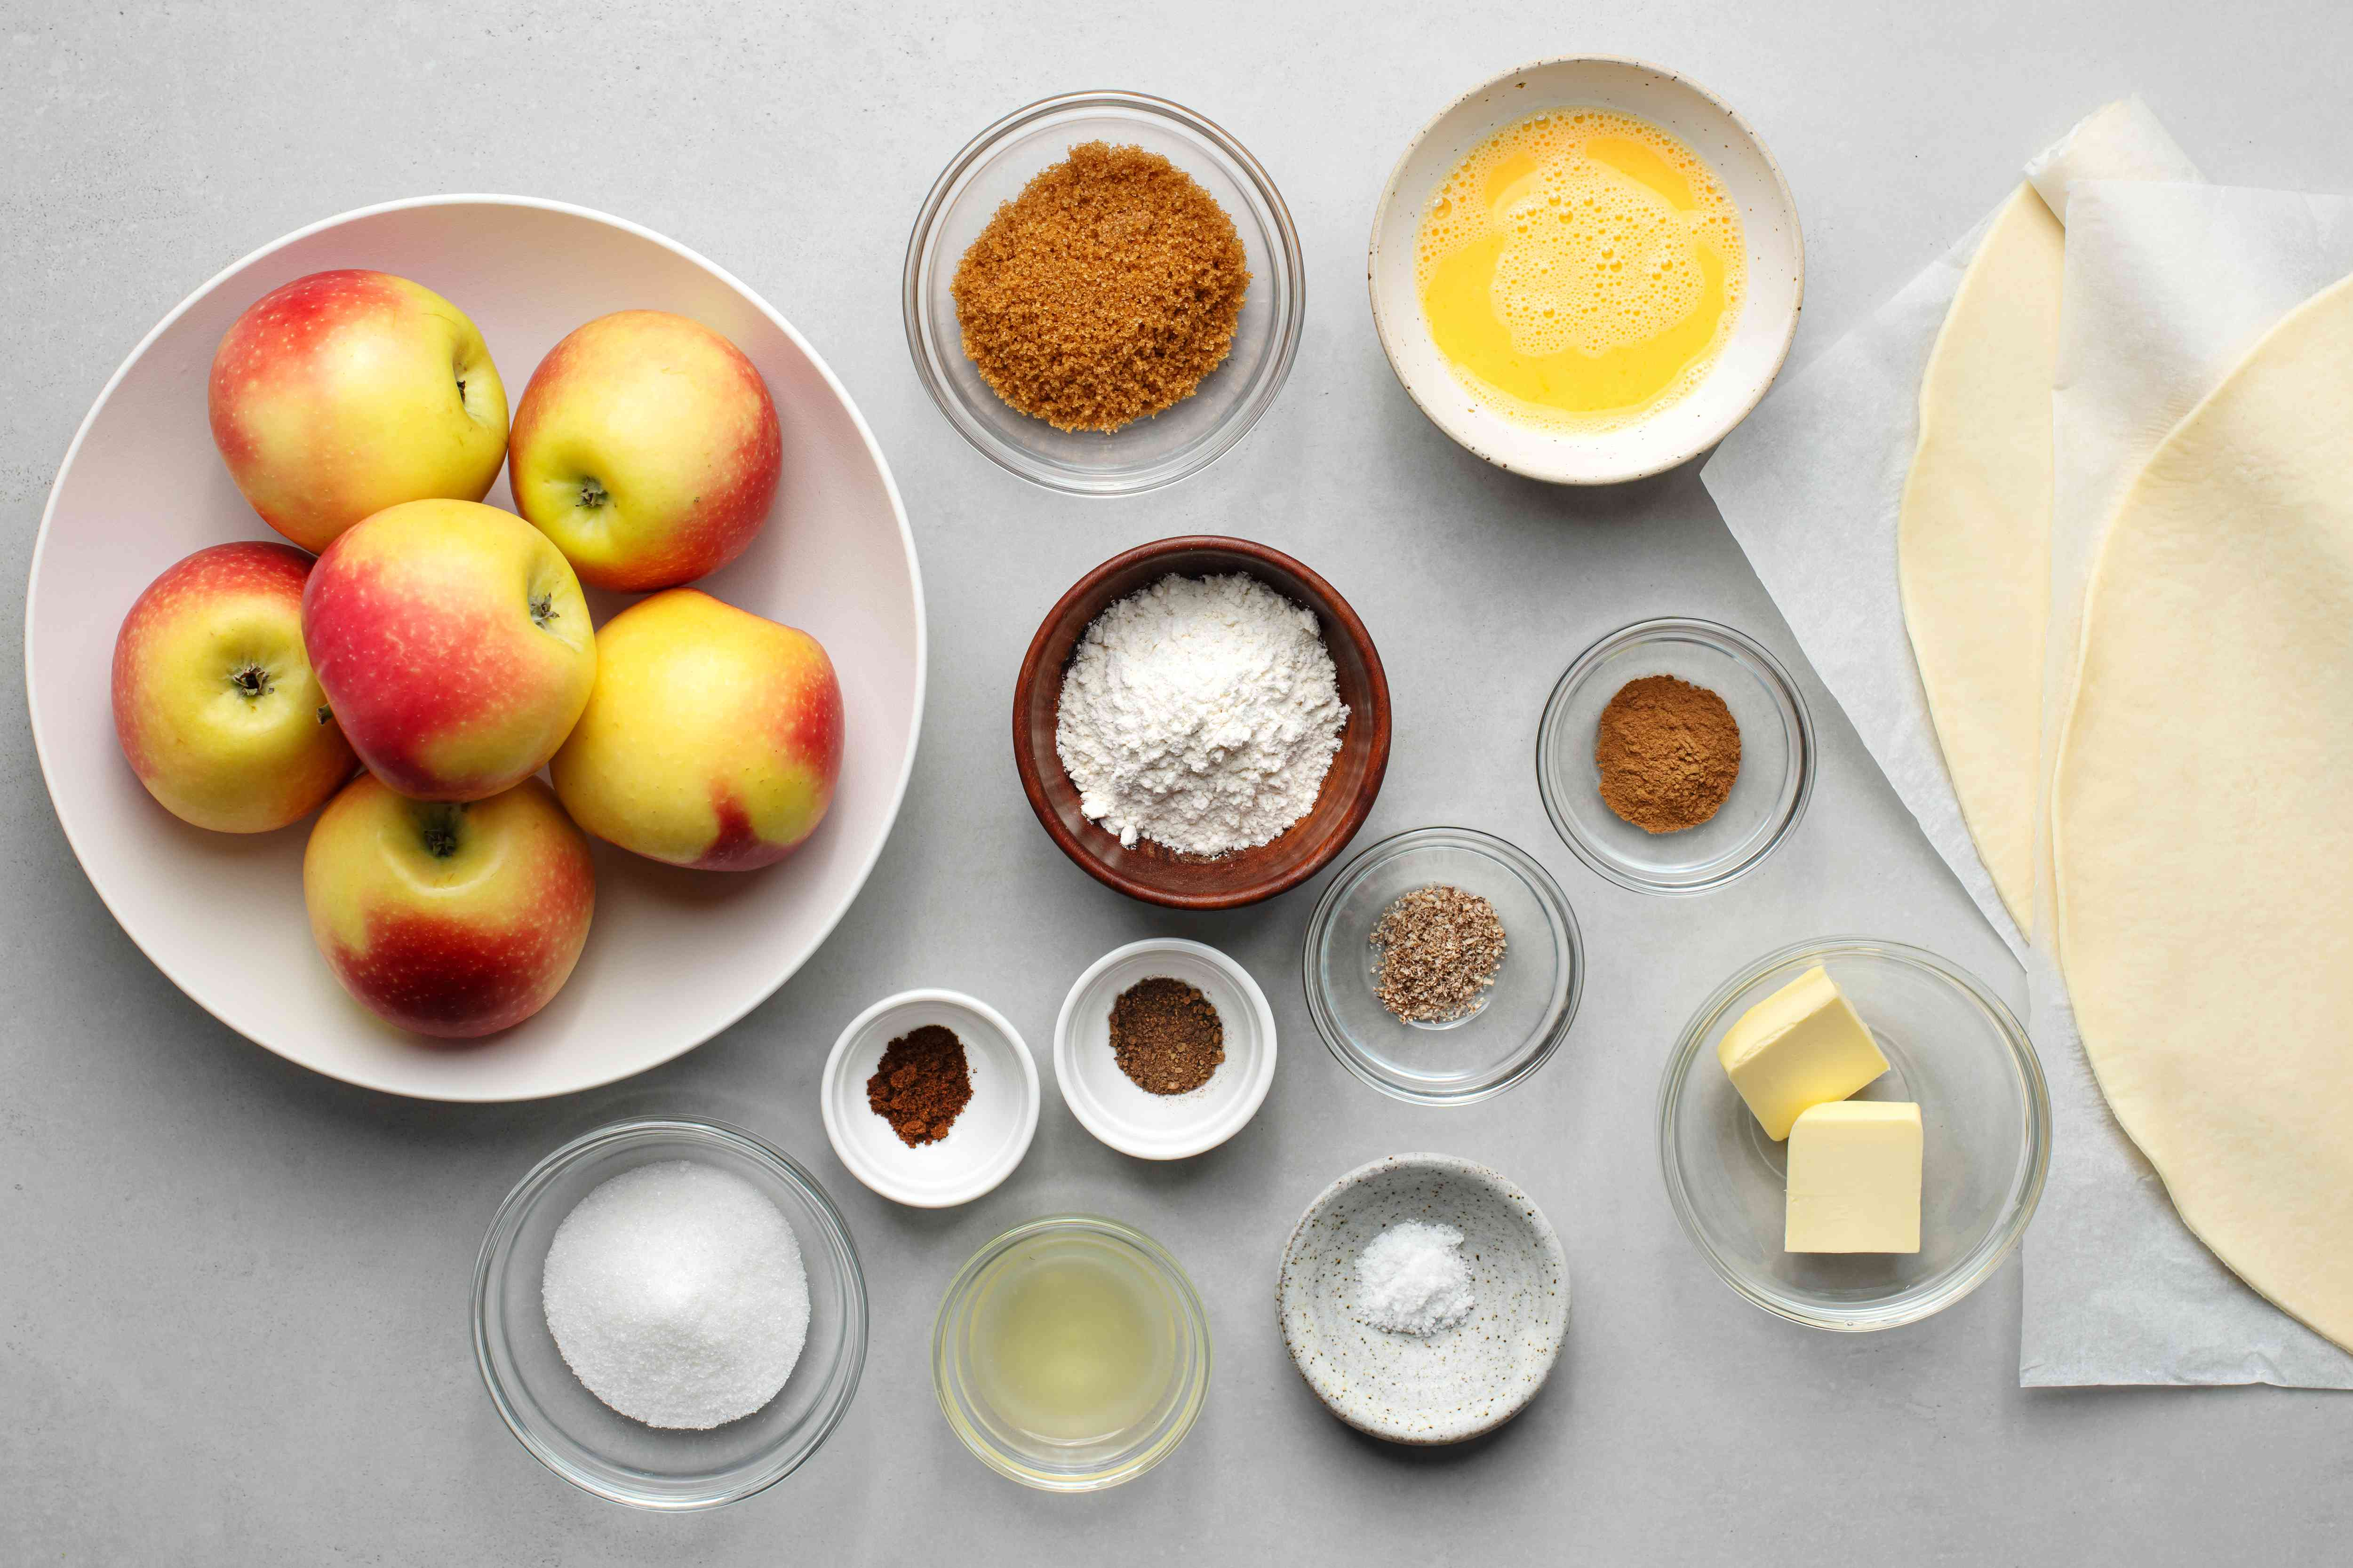 Old-Fashioned Apple Pie ingredients